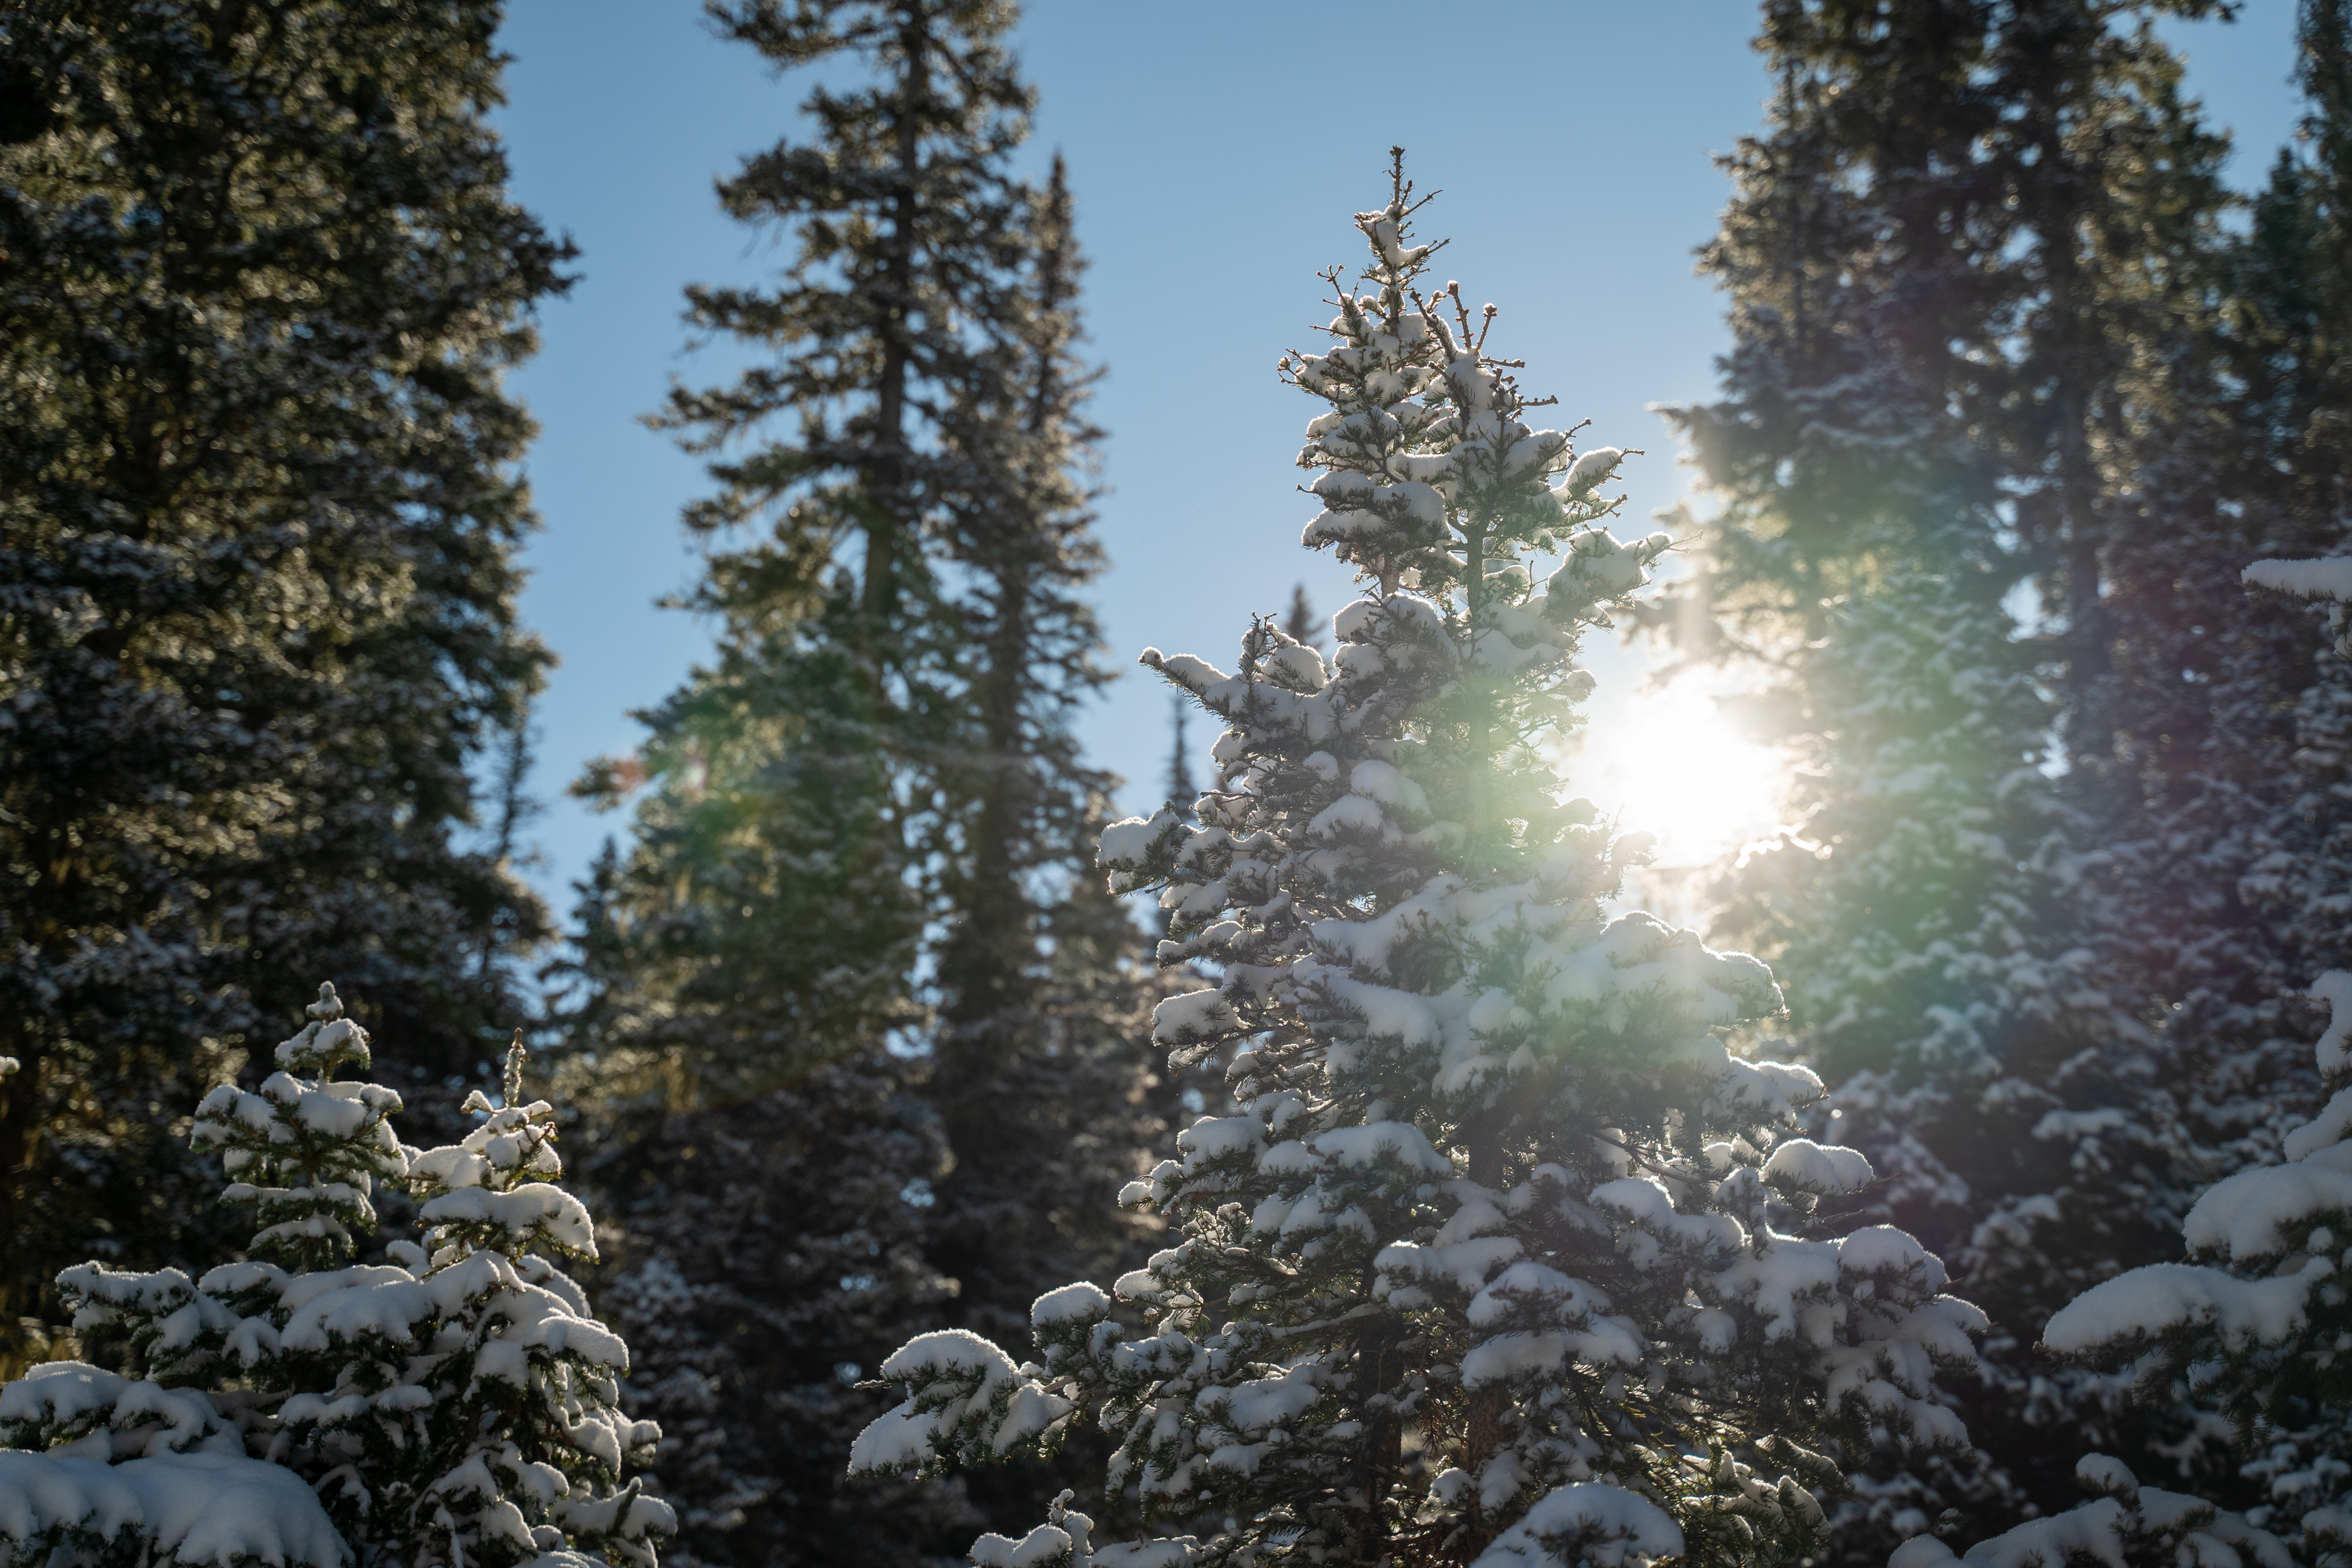 10-27-20-_-Snow-and-Snowmaking-web-16